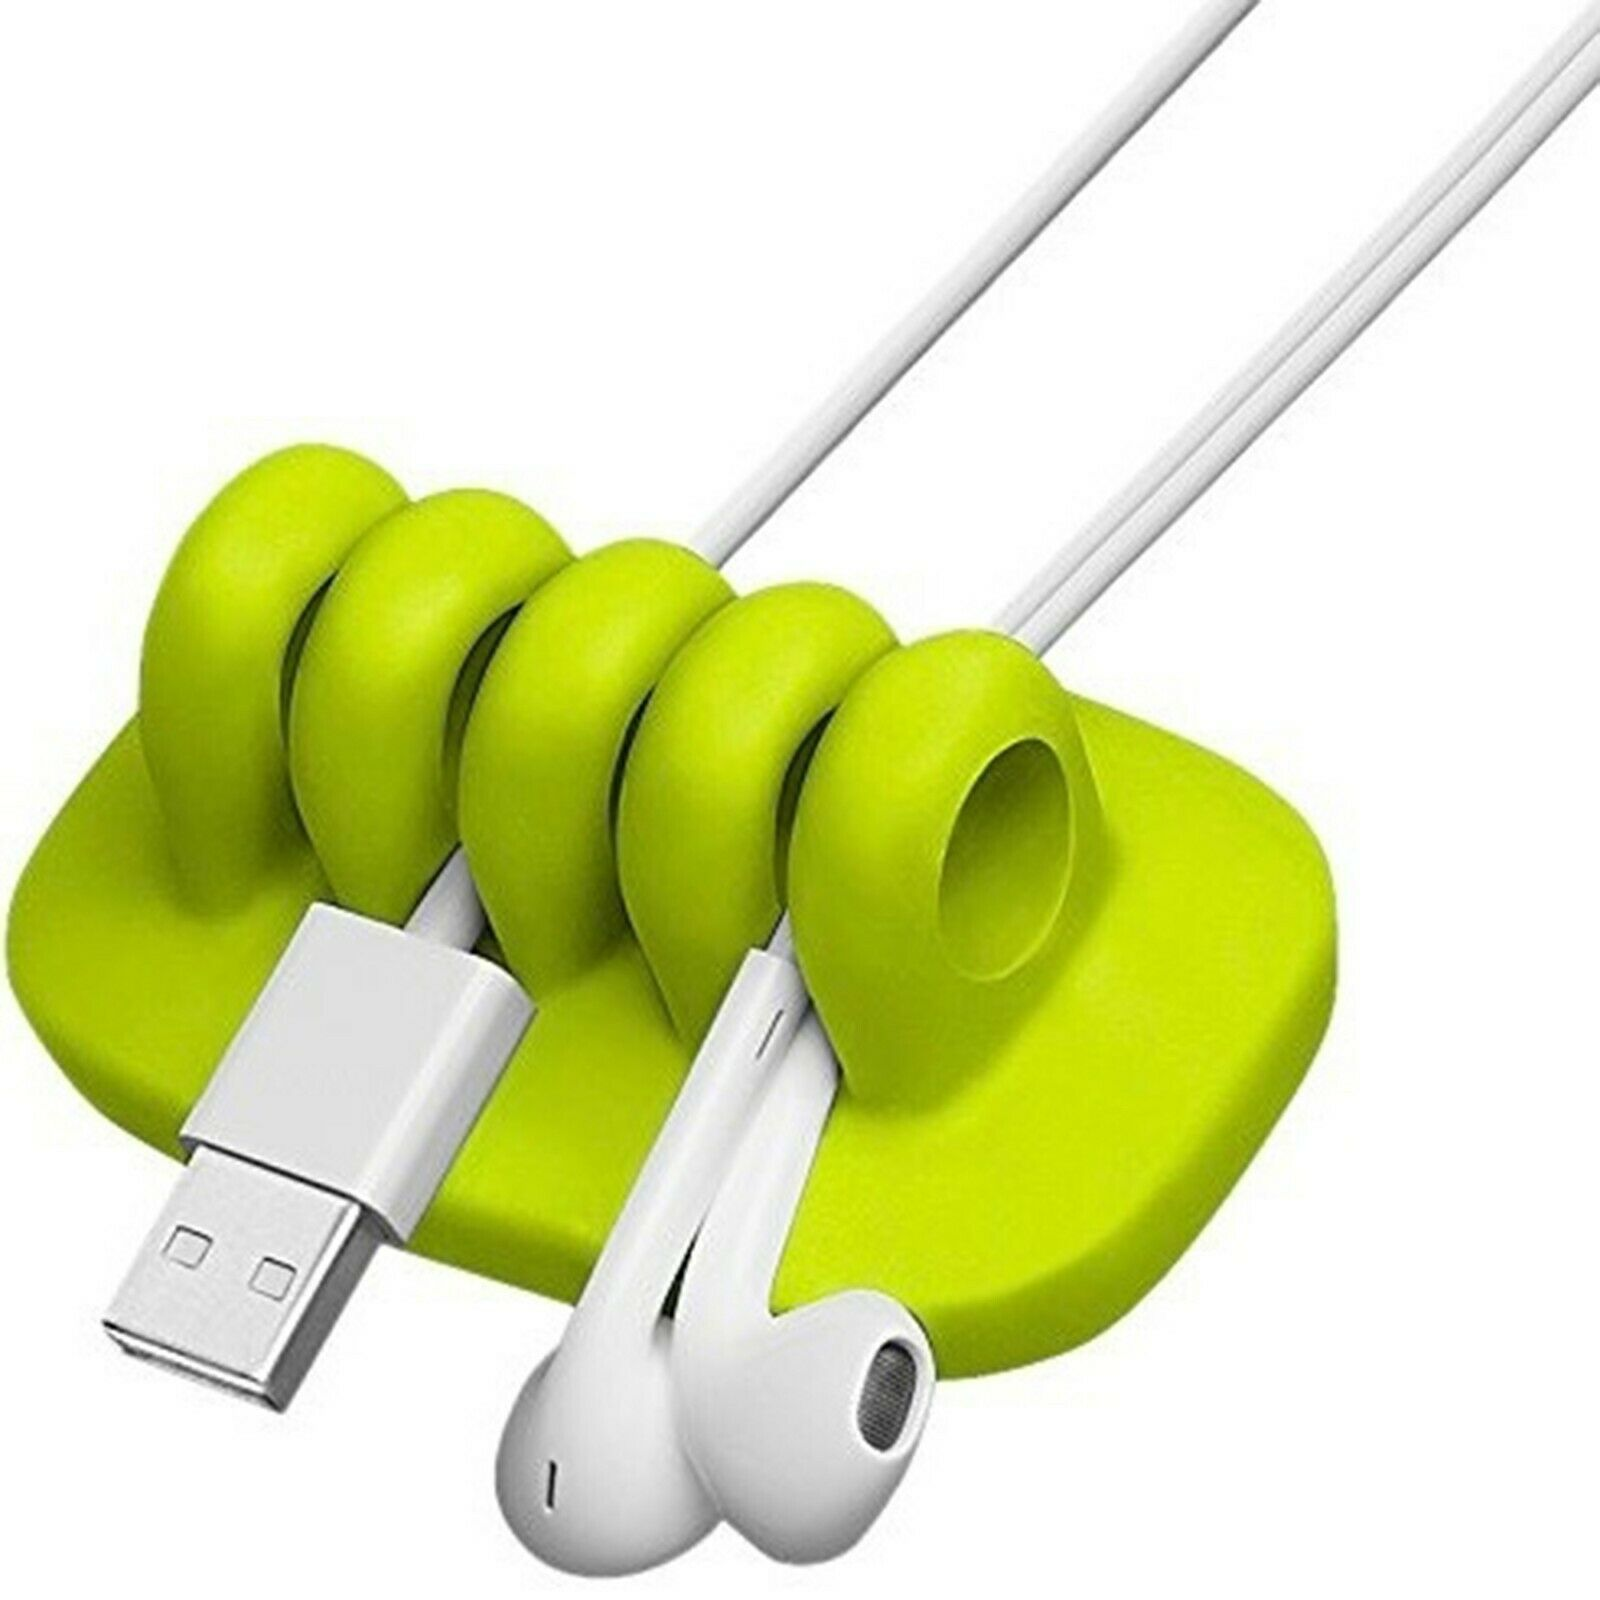 Quirky green desktop cable management office leads wires tidy gadget